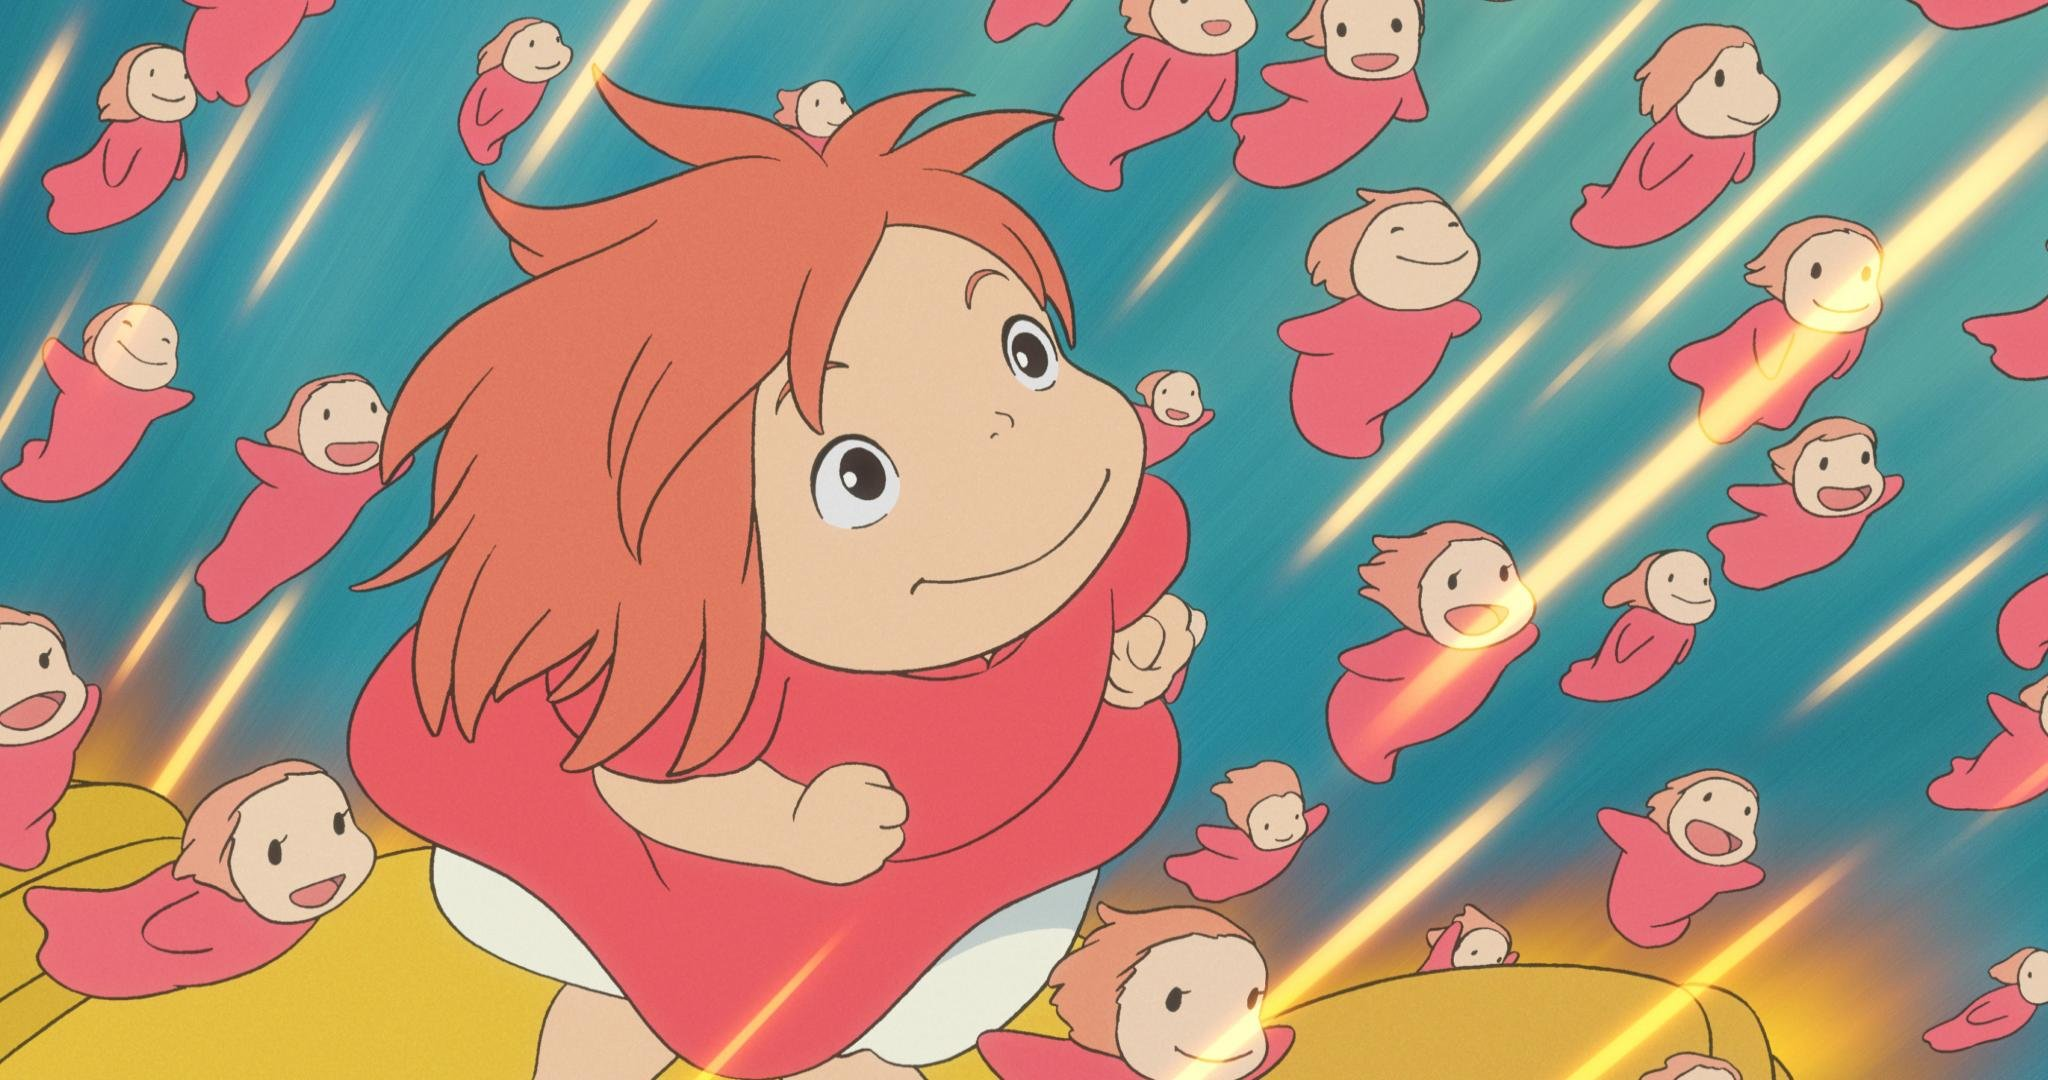 Ponyo Wallpapers Hd For Desktop Backgrounds